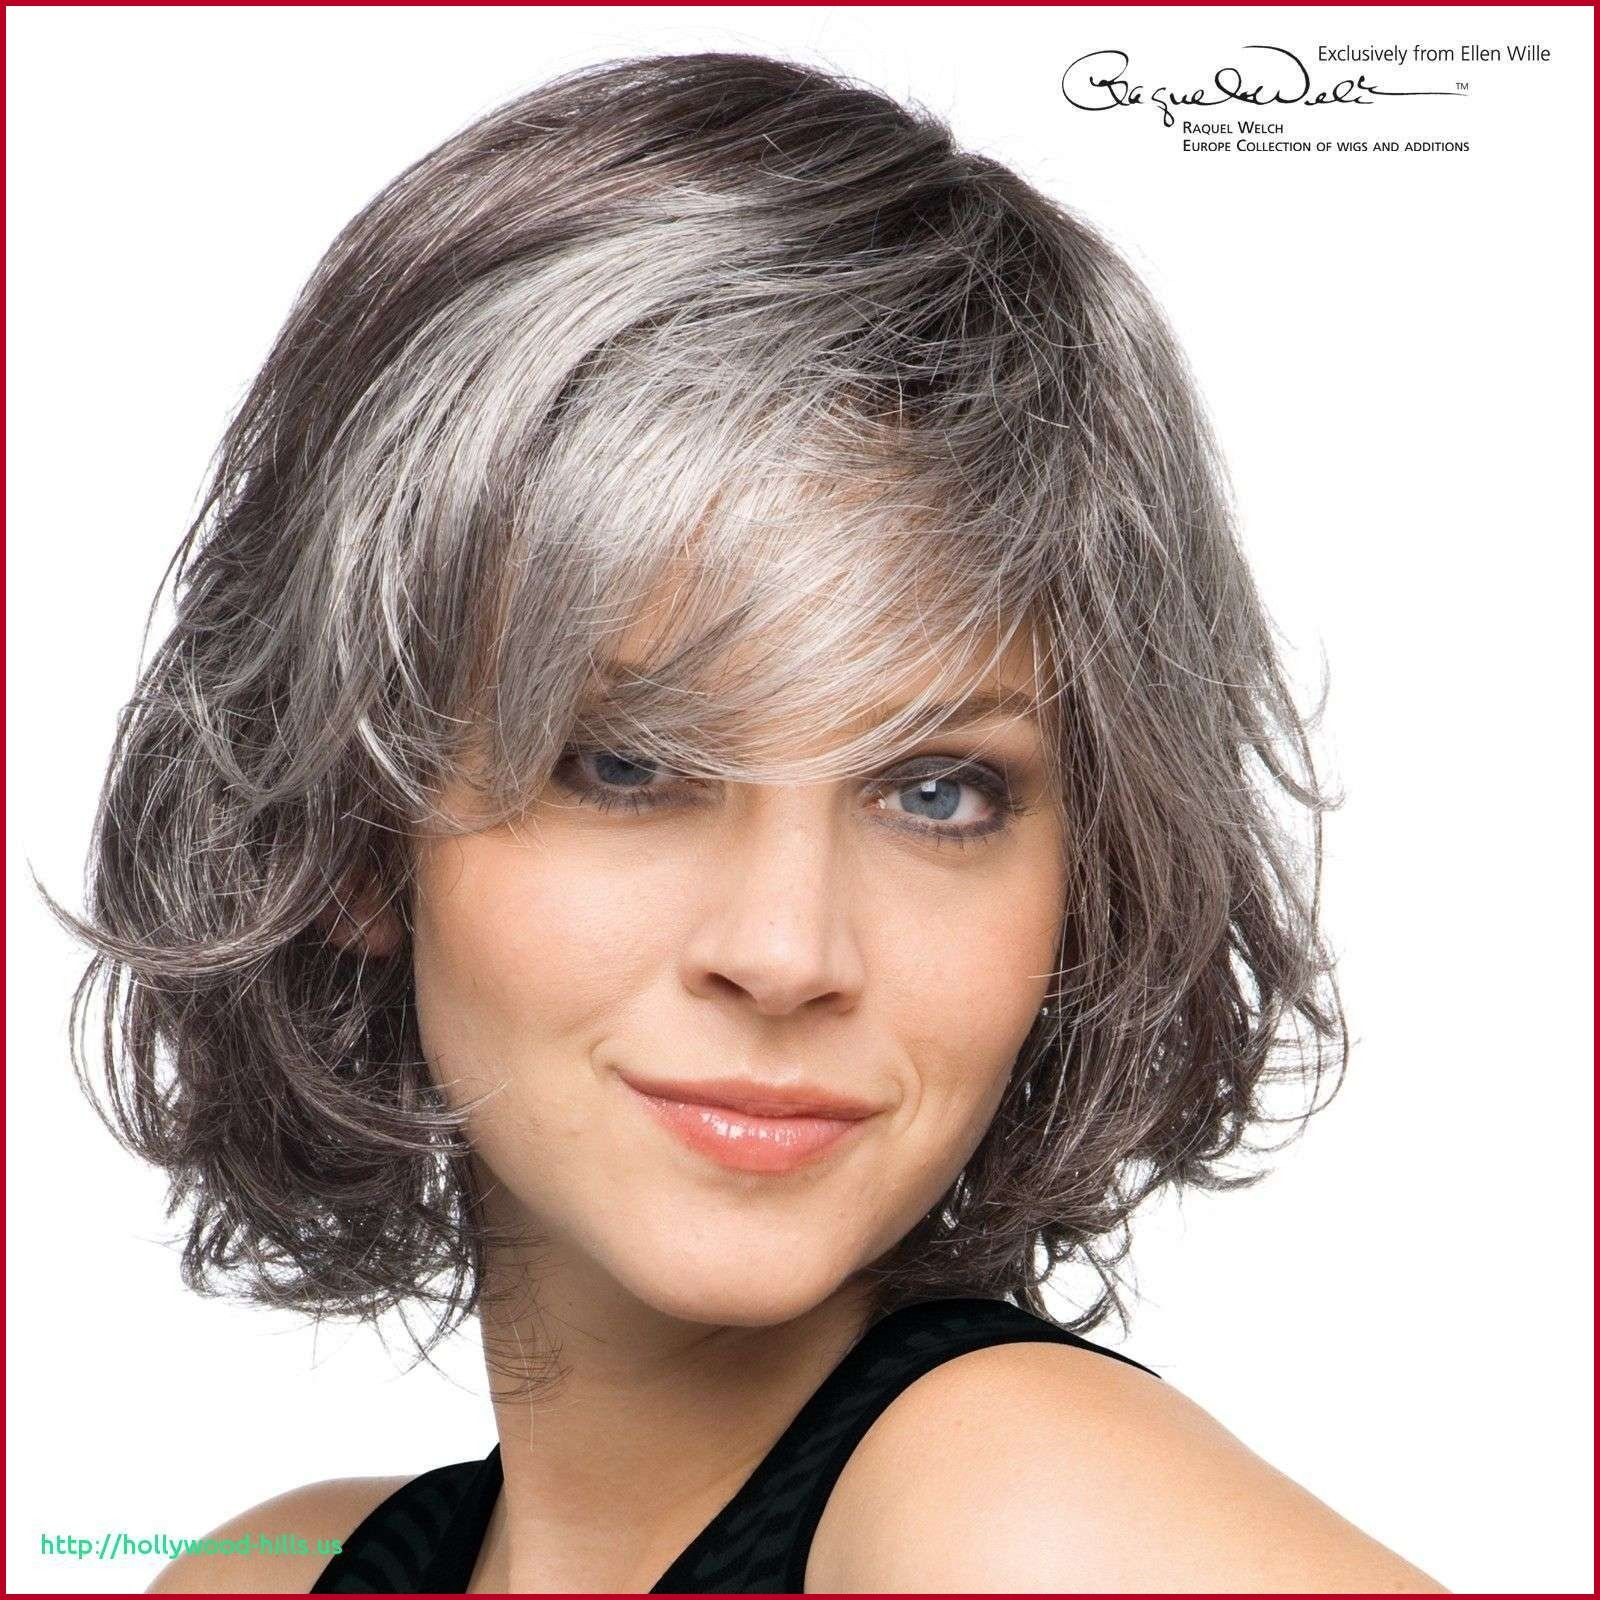 Hairstyles For Grey Hair Over 50 277584 Short Gray Hairstyles For Older Women Over 50 Gray Hai Medium Hair Color Short Hairstyles For Women Short Hair Styles